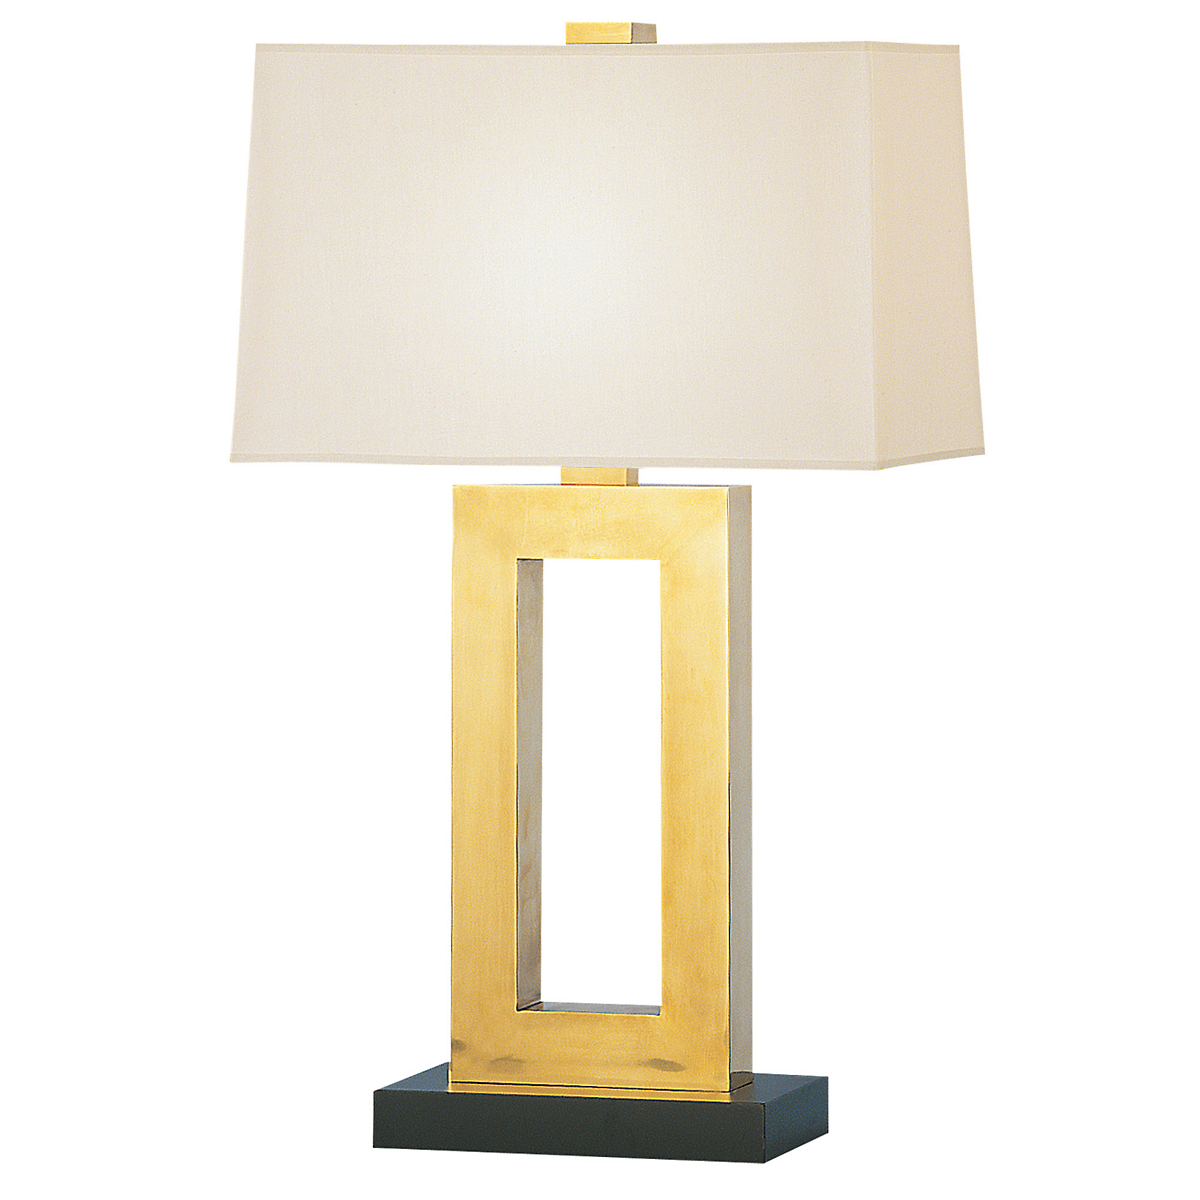 Dionne Table Lamp, Brass